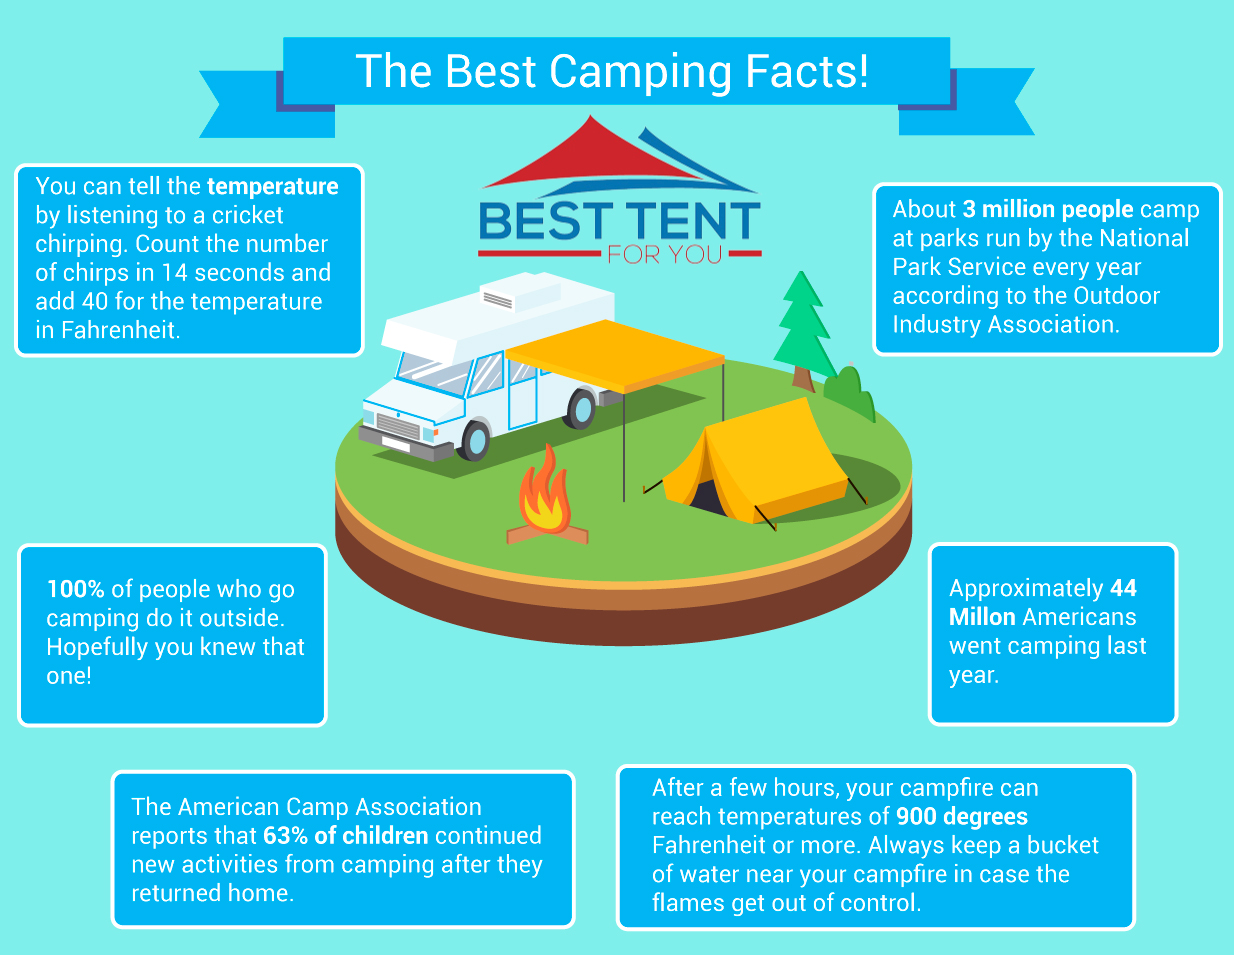 Best Camping Facts